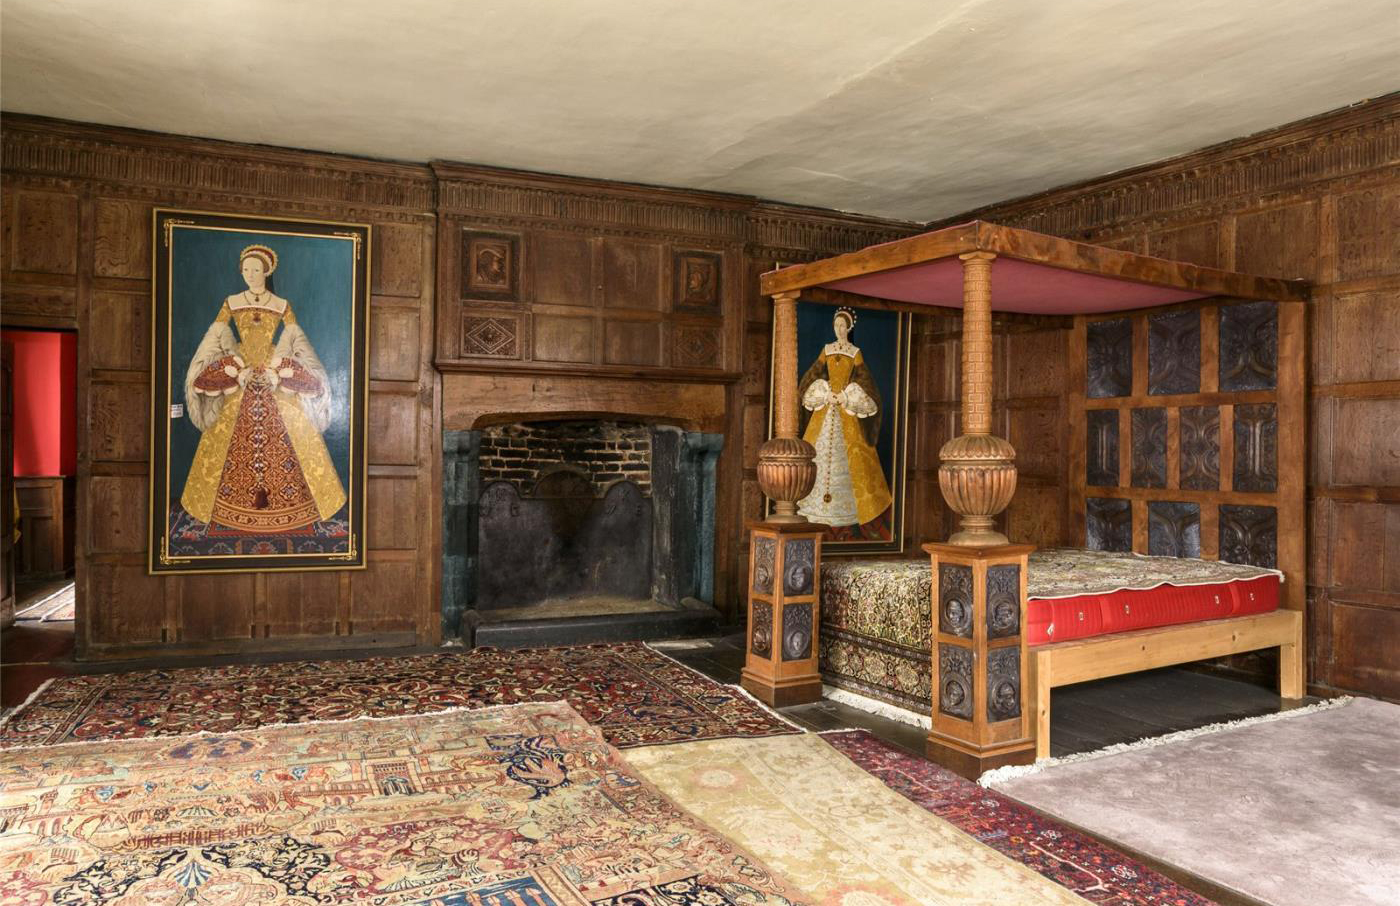 Catherine of Aragon's Shropshire home